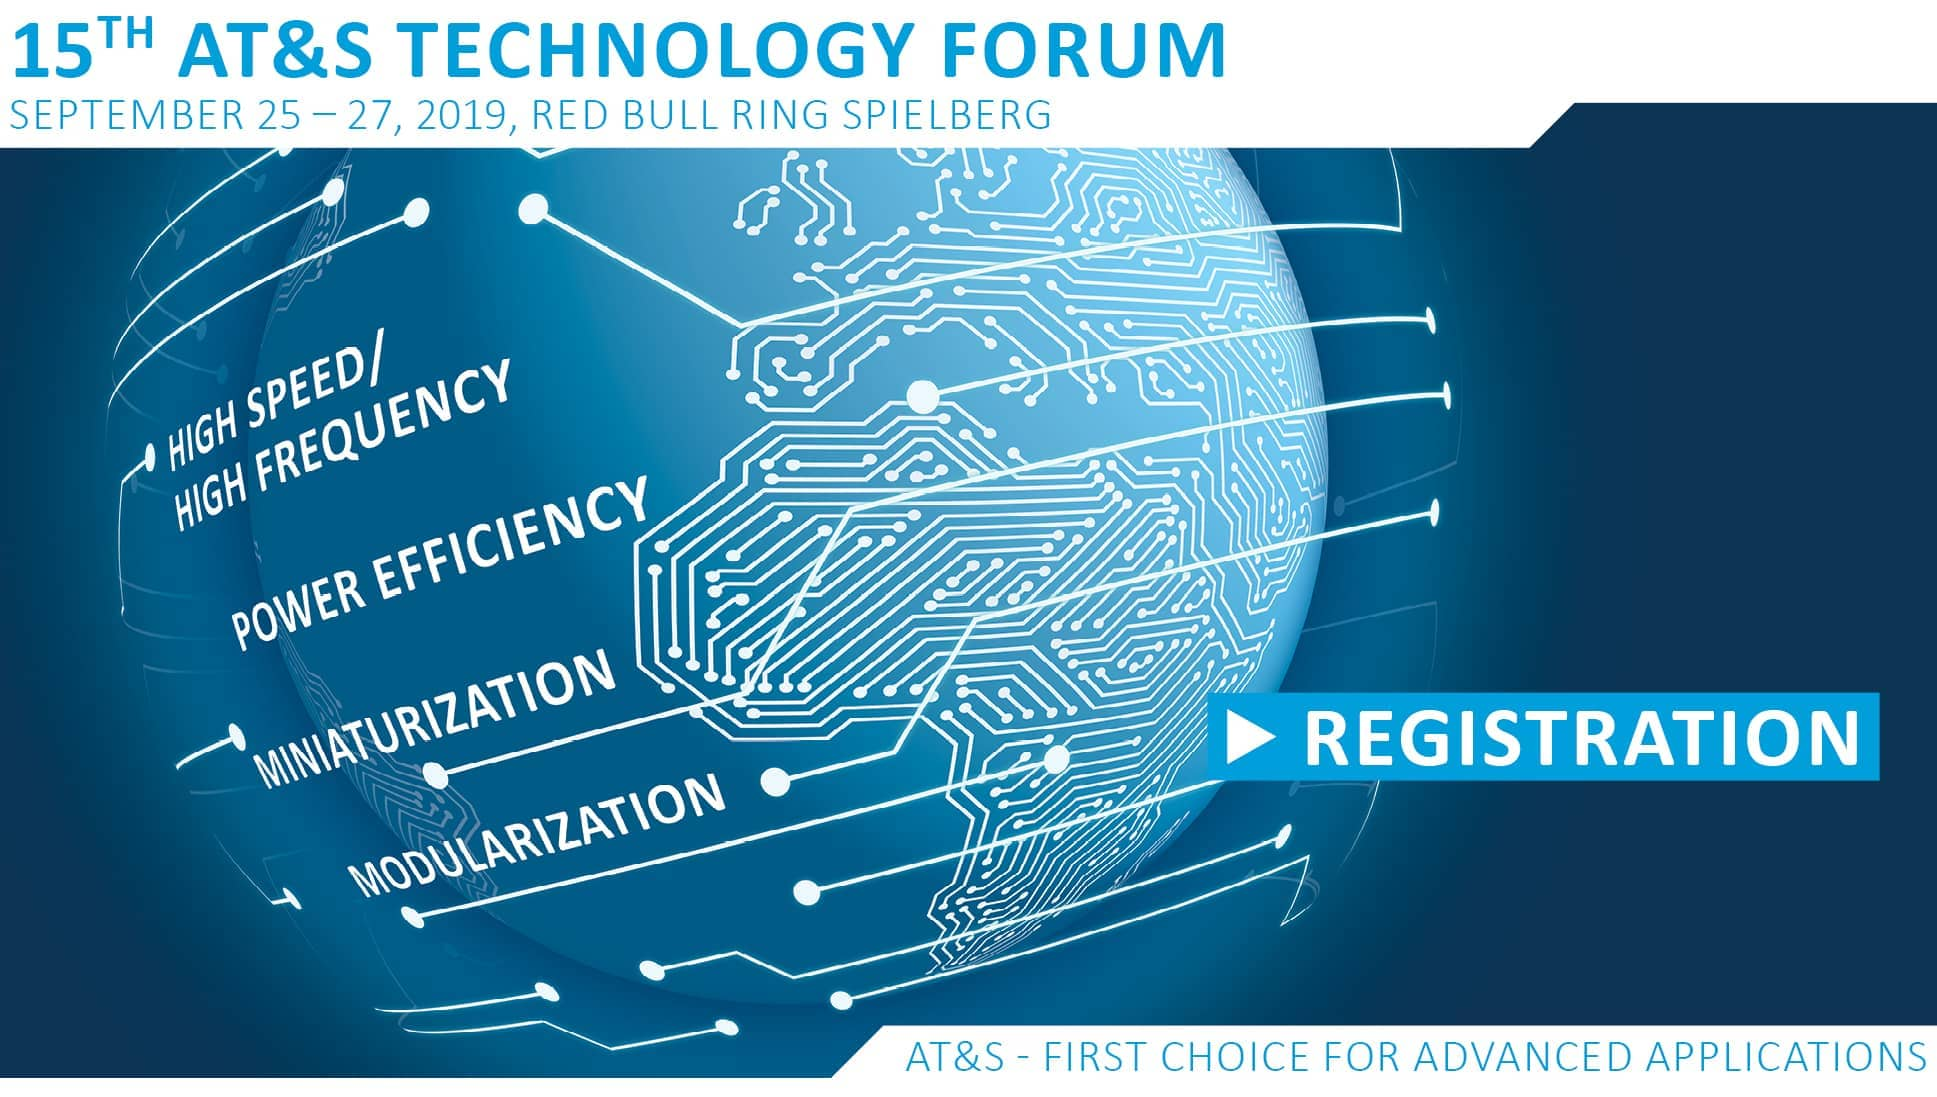 AT&S Technology Forum